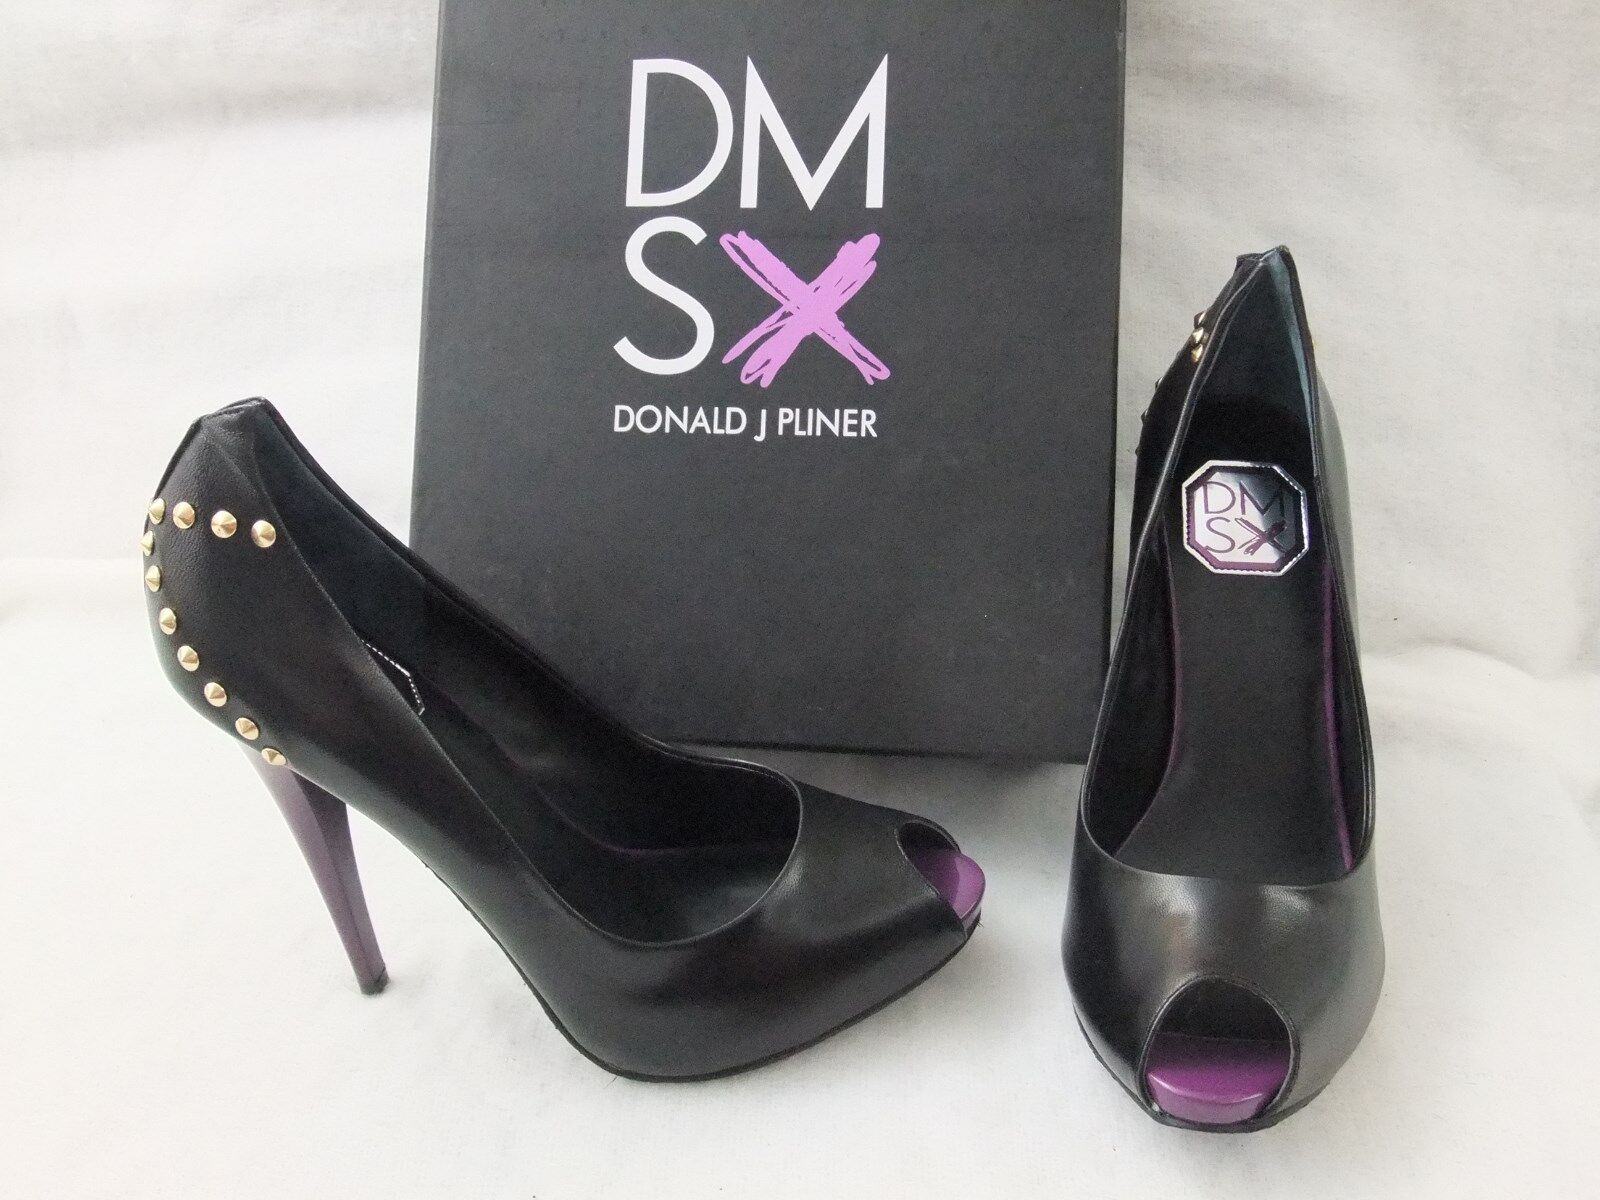 DONALD DONALD DONALD J PLINER DMSX Latoya Black Leather Heel Stiletto Pump Size 8.5 NIB  148 ae6815